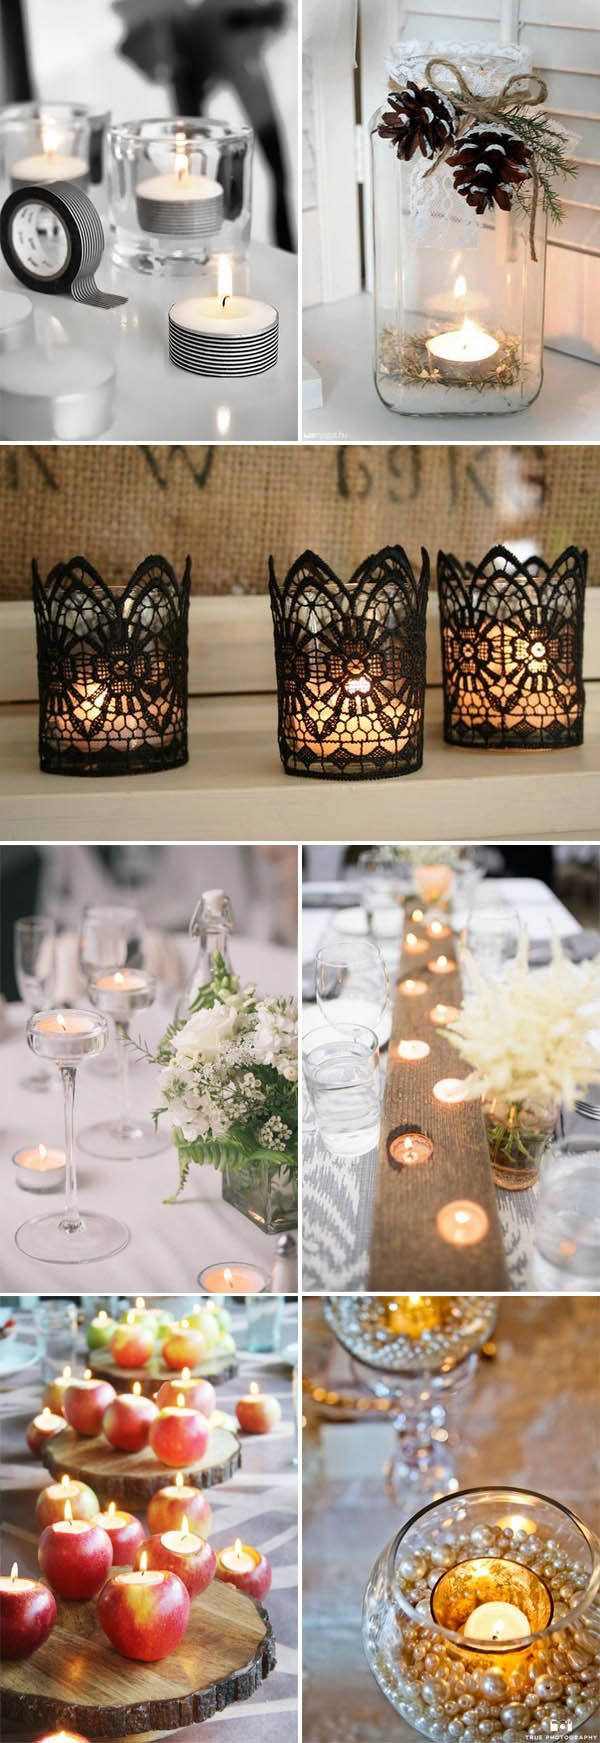 cheap decorative candle wedding favors and diy candle lights ideas wedding reception diy. Black Bedroom Furniture Sets. Home Design Ideas